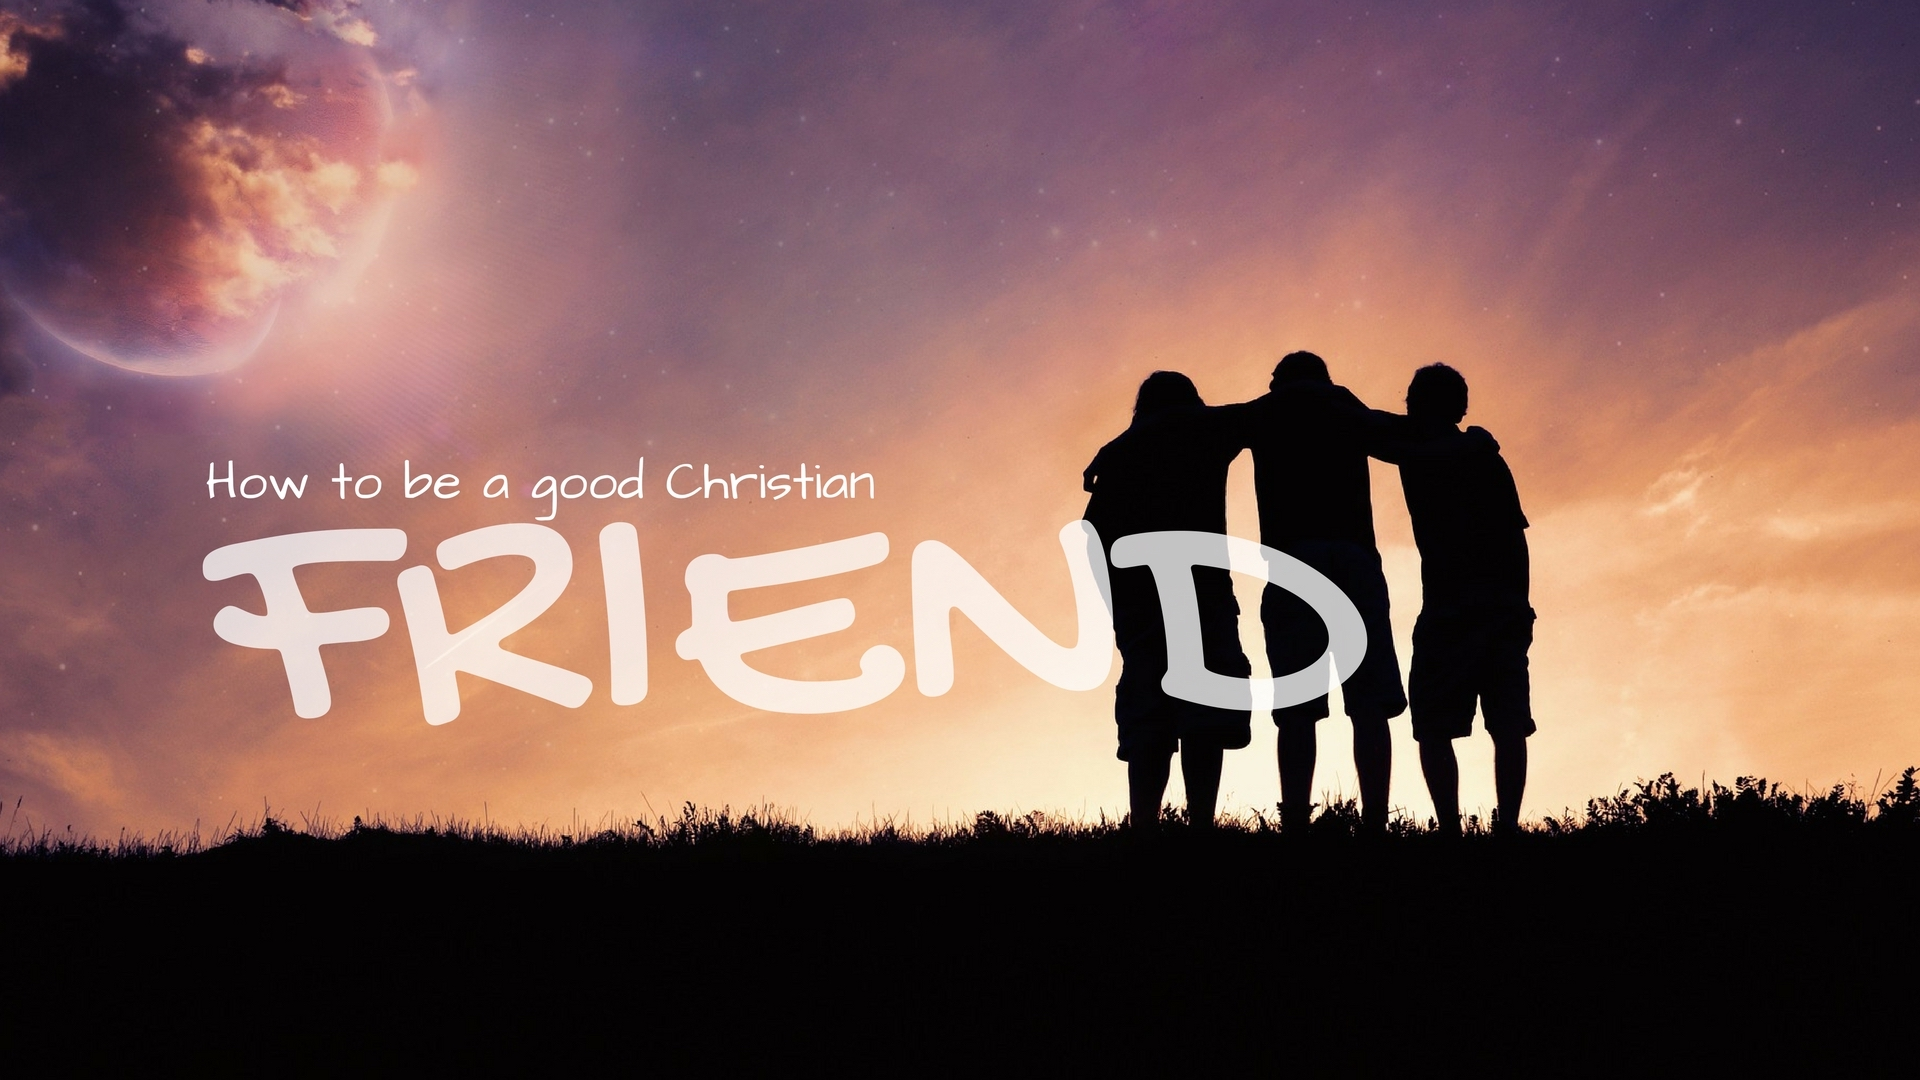 How to be a good Christian friend